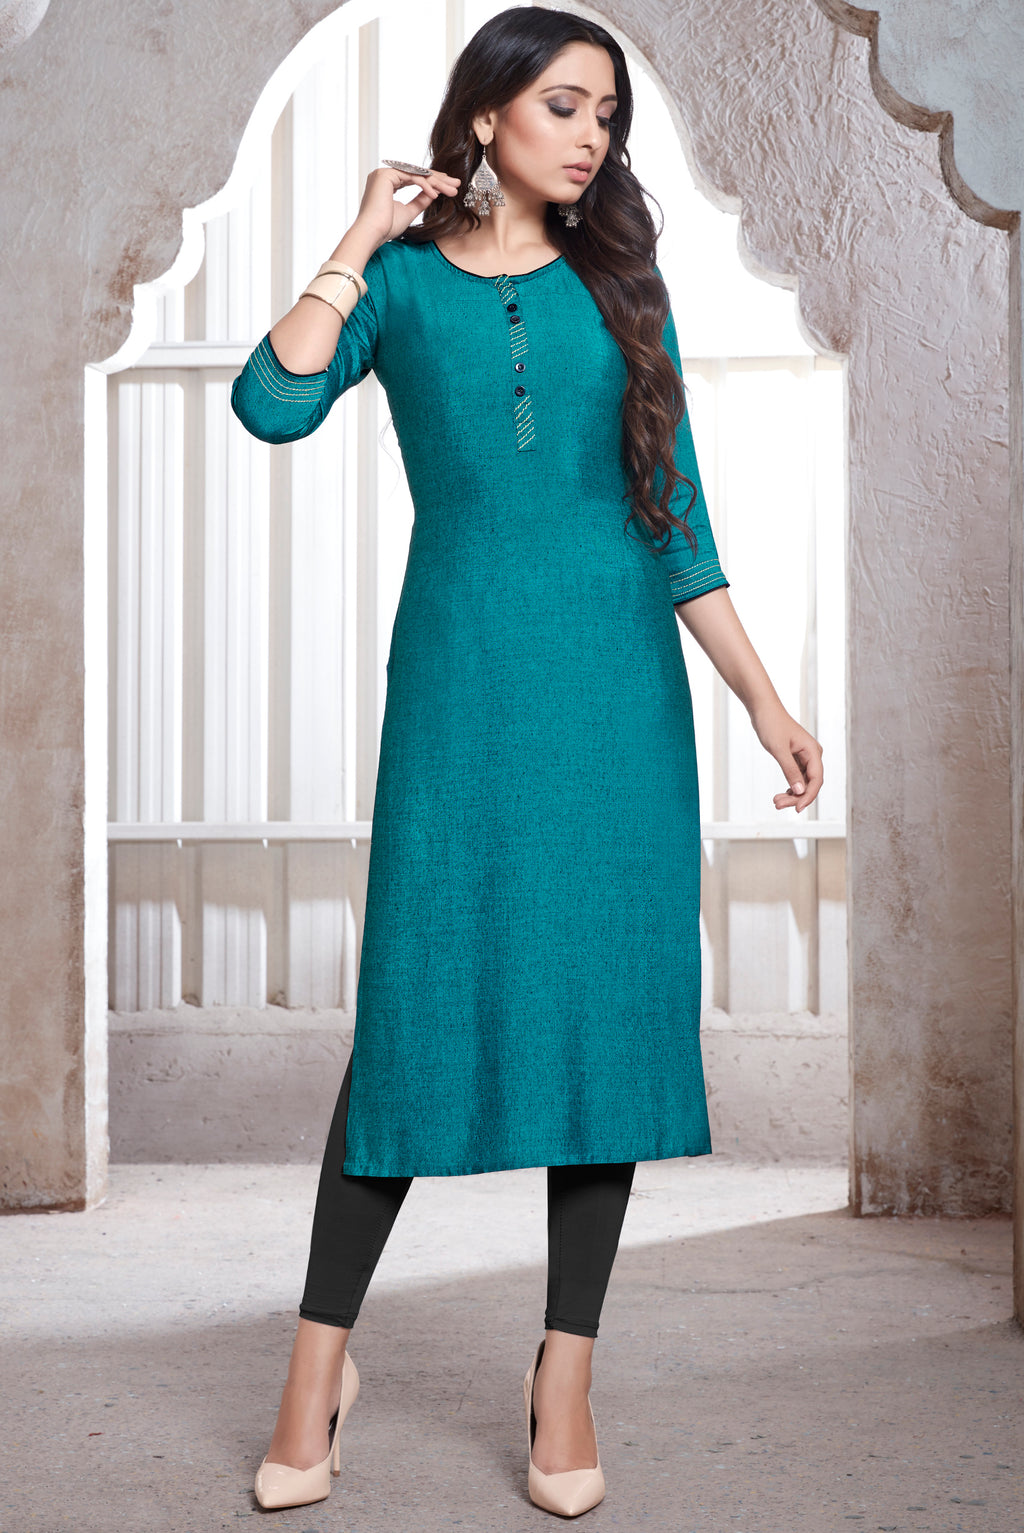 Firozi Color Rayon Daily Wear Kurtis NYF-9120